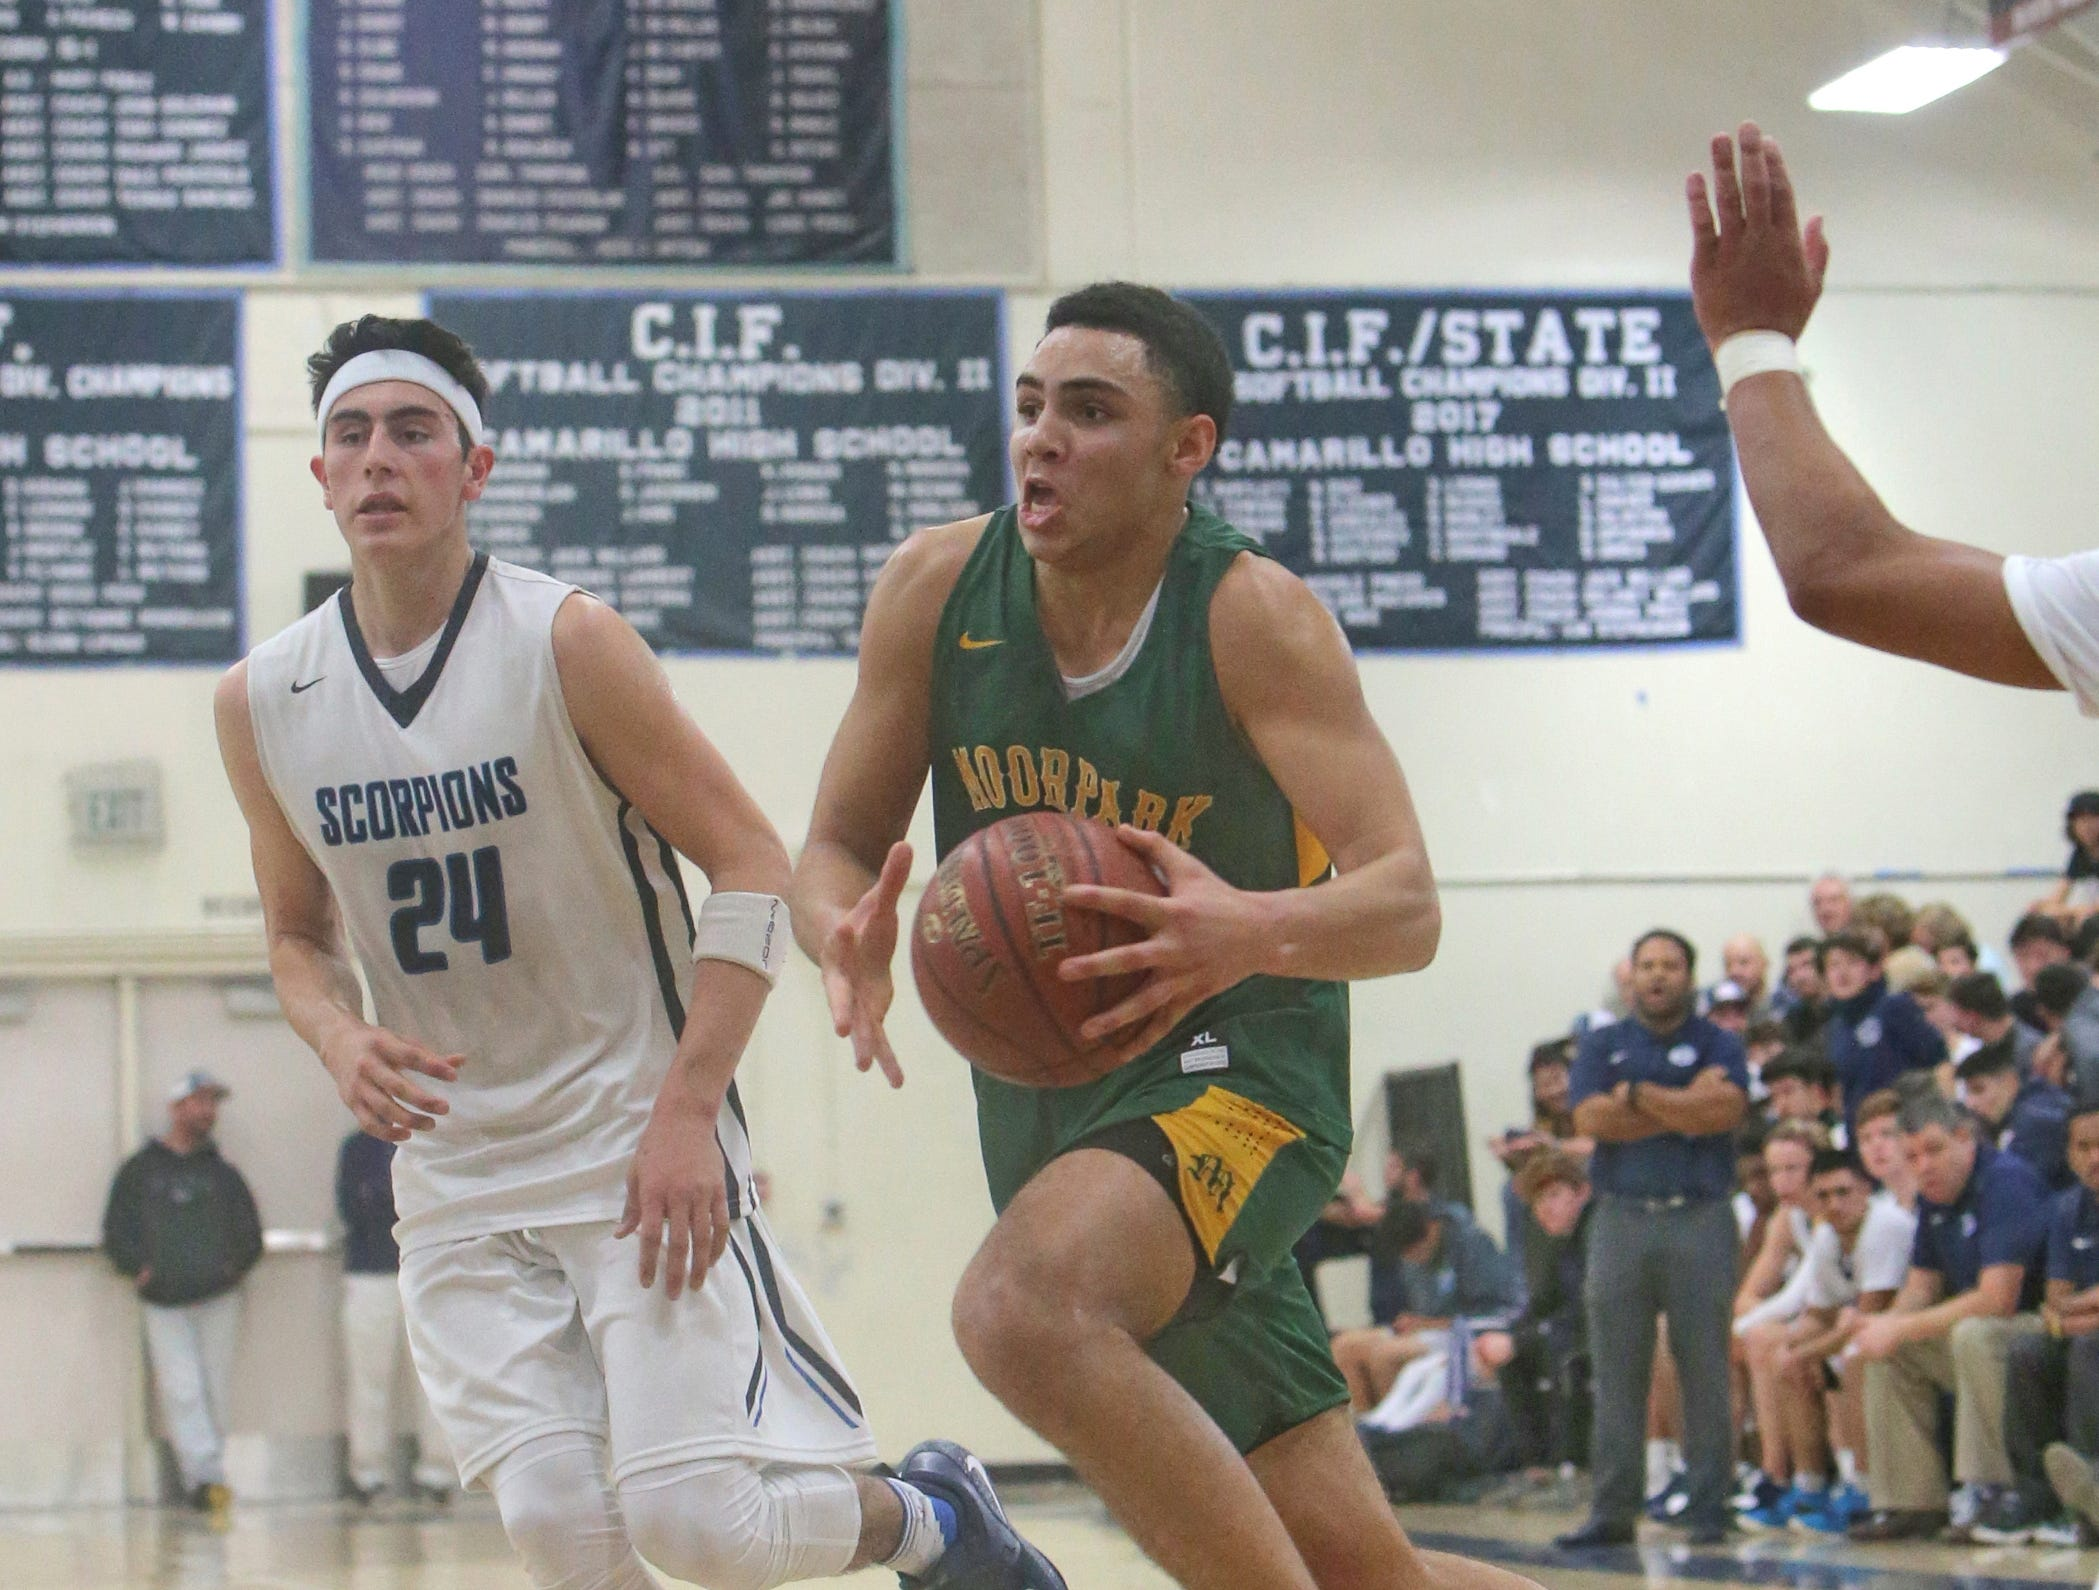 Moorpark's Drake London drives to the basket during Friday night's game against Camarillo. Drake scored 34 points in the Musketeers' 82-68 loss.